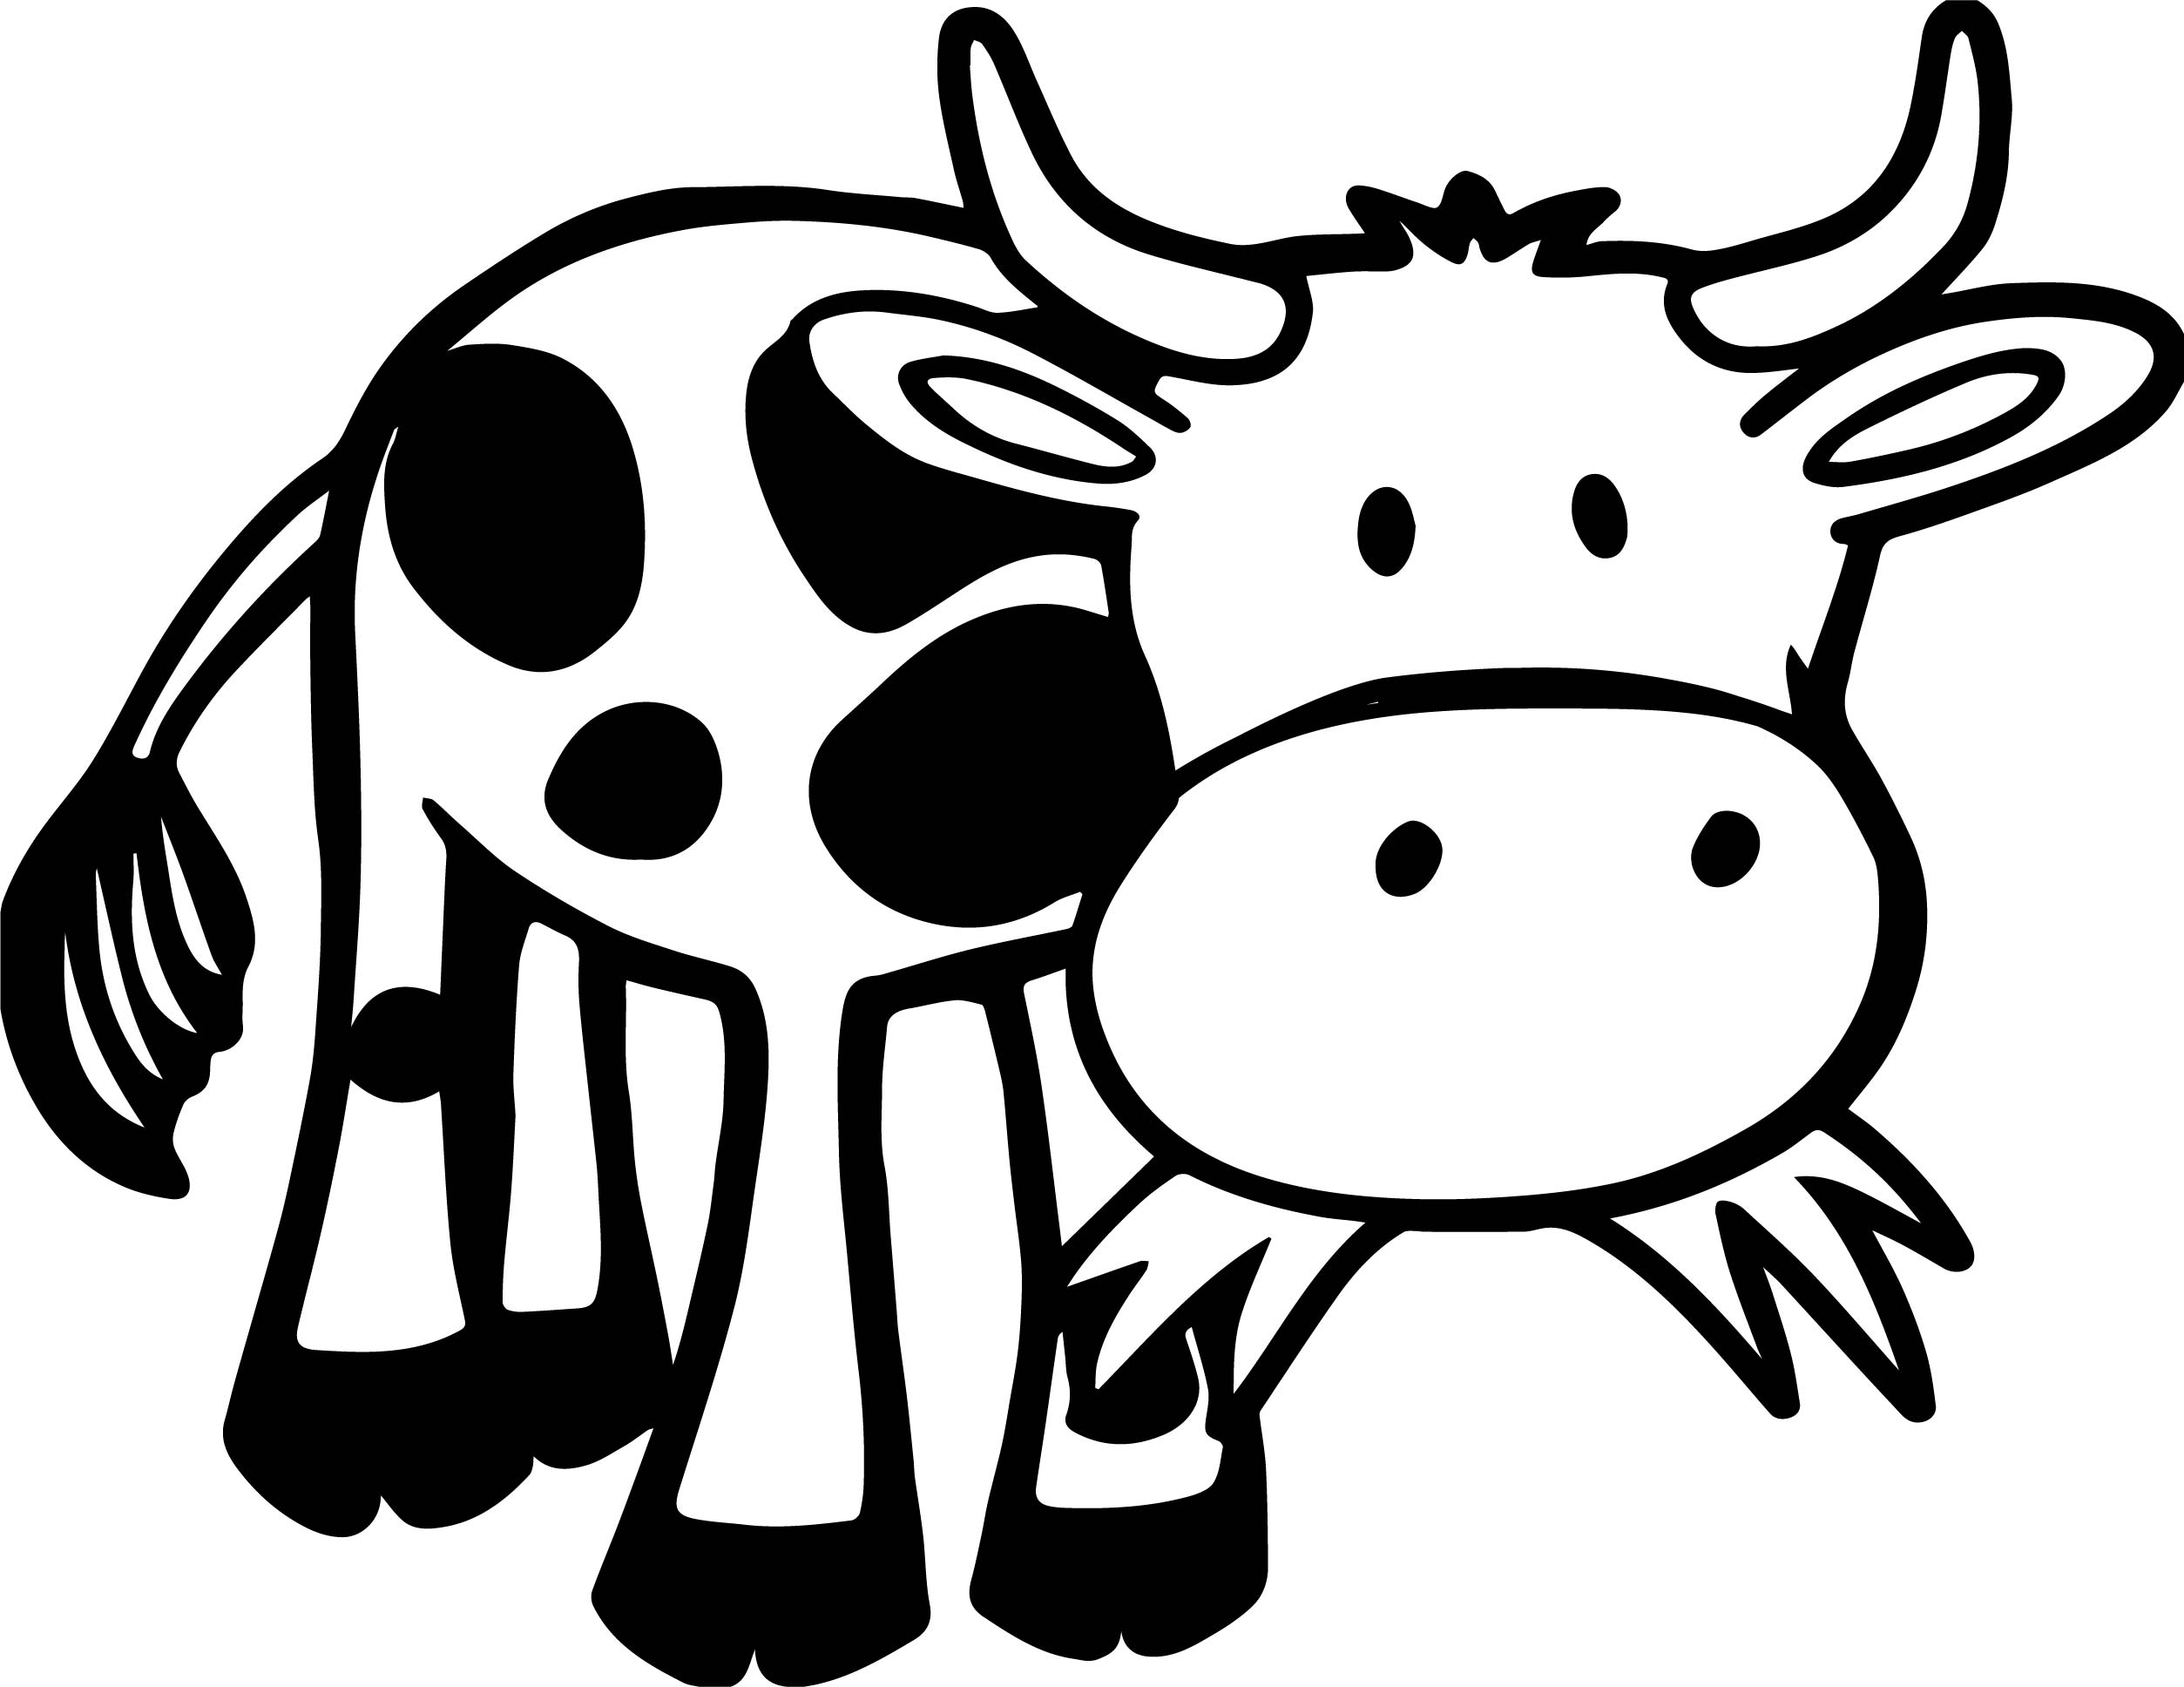 picture of a cow to colour cute cow coloring pages to print cow coloring pages cow picture to colour a of